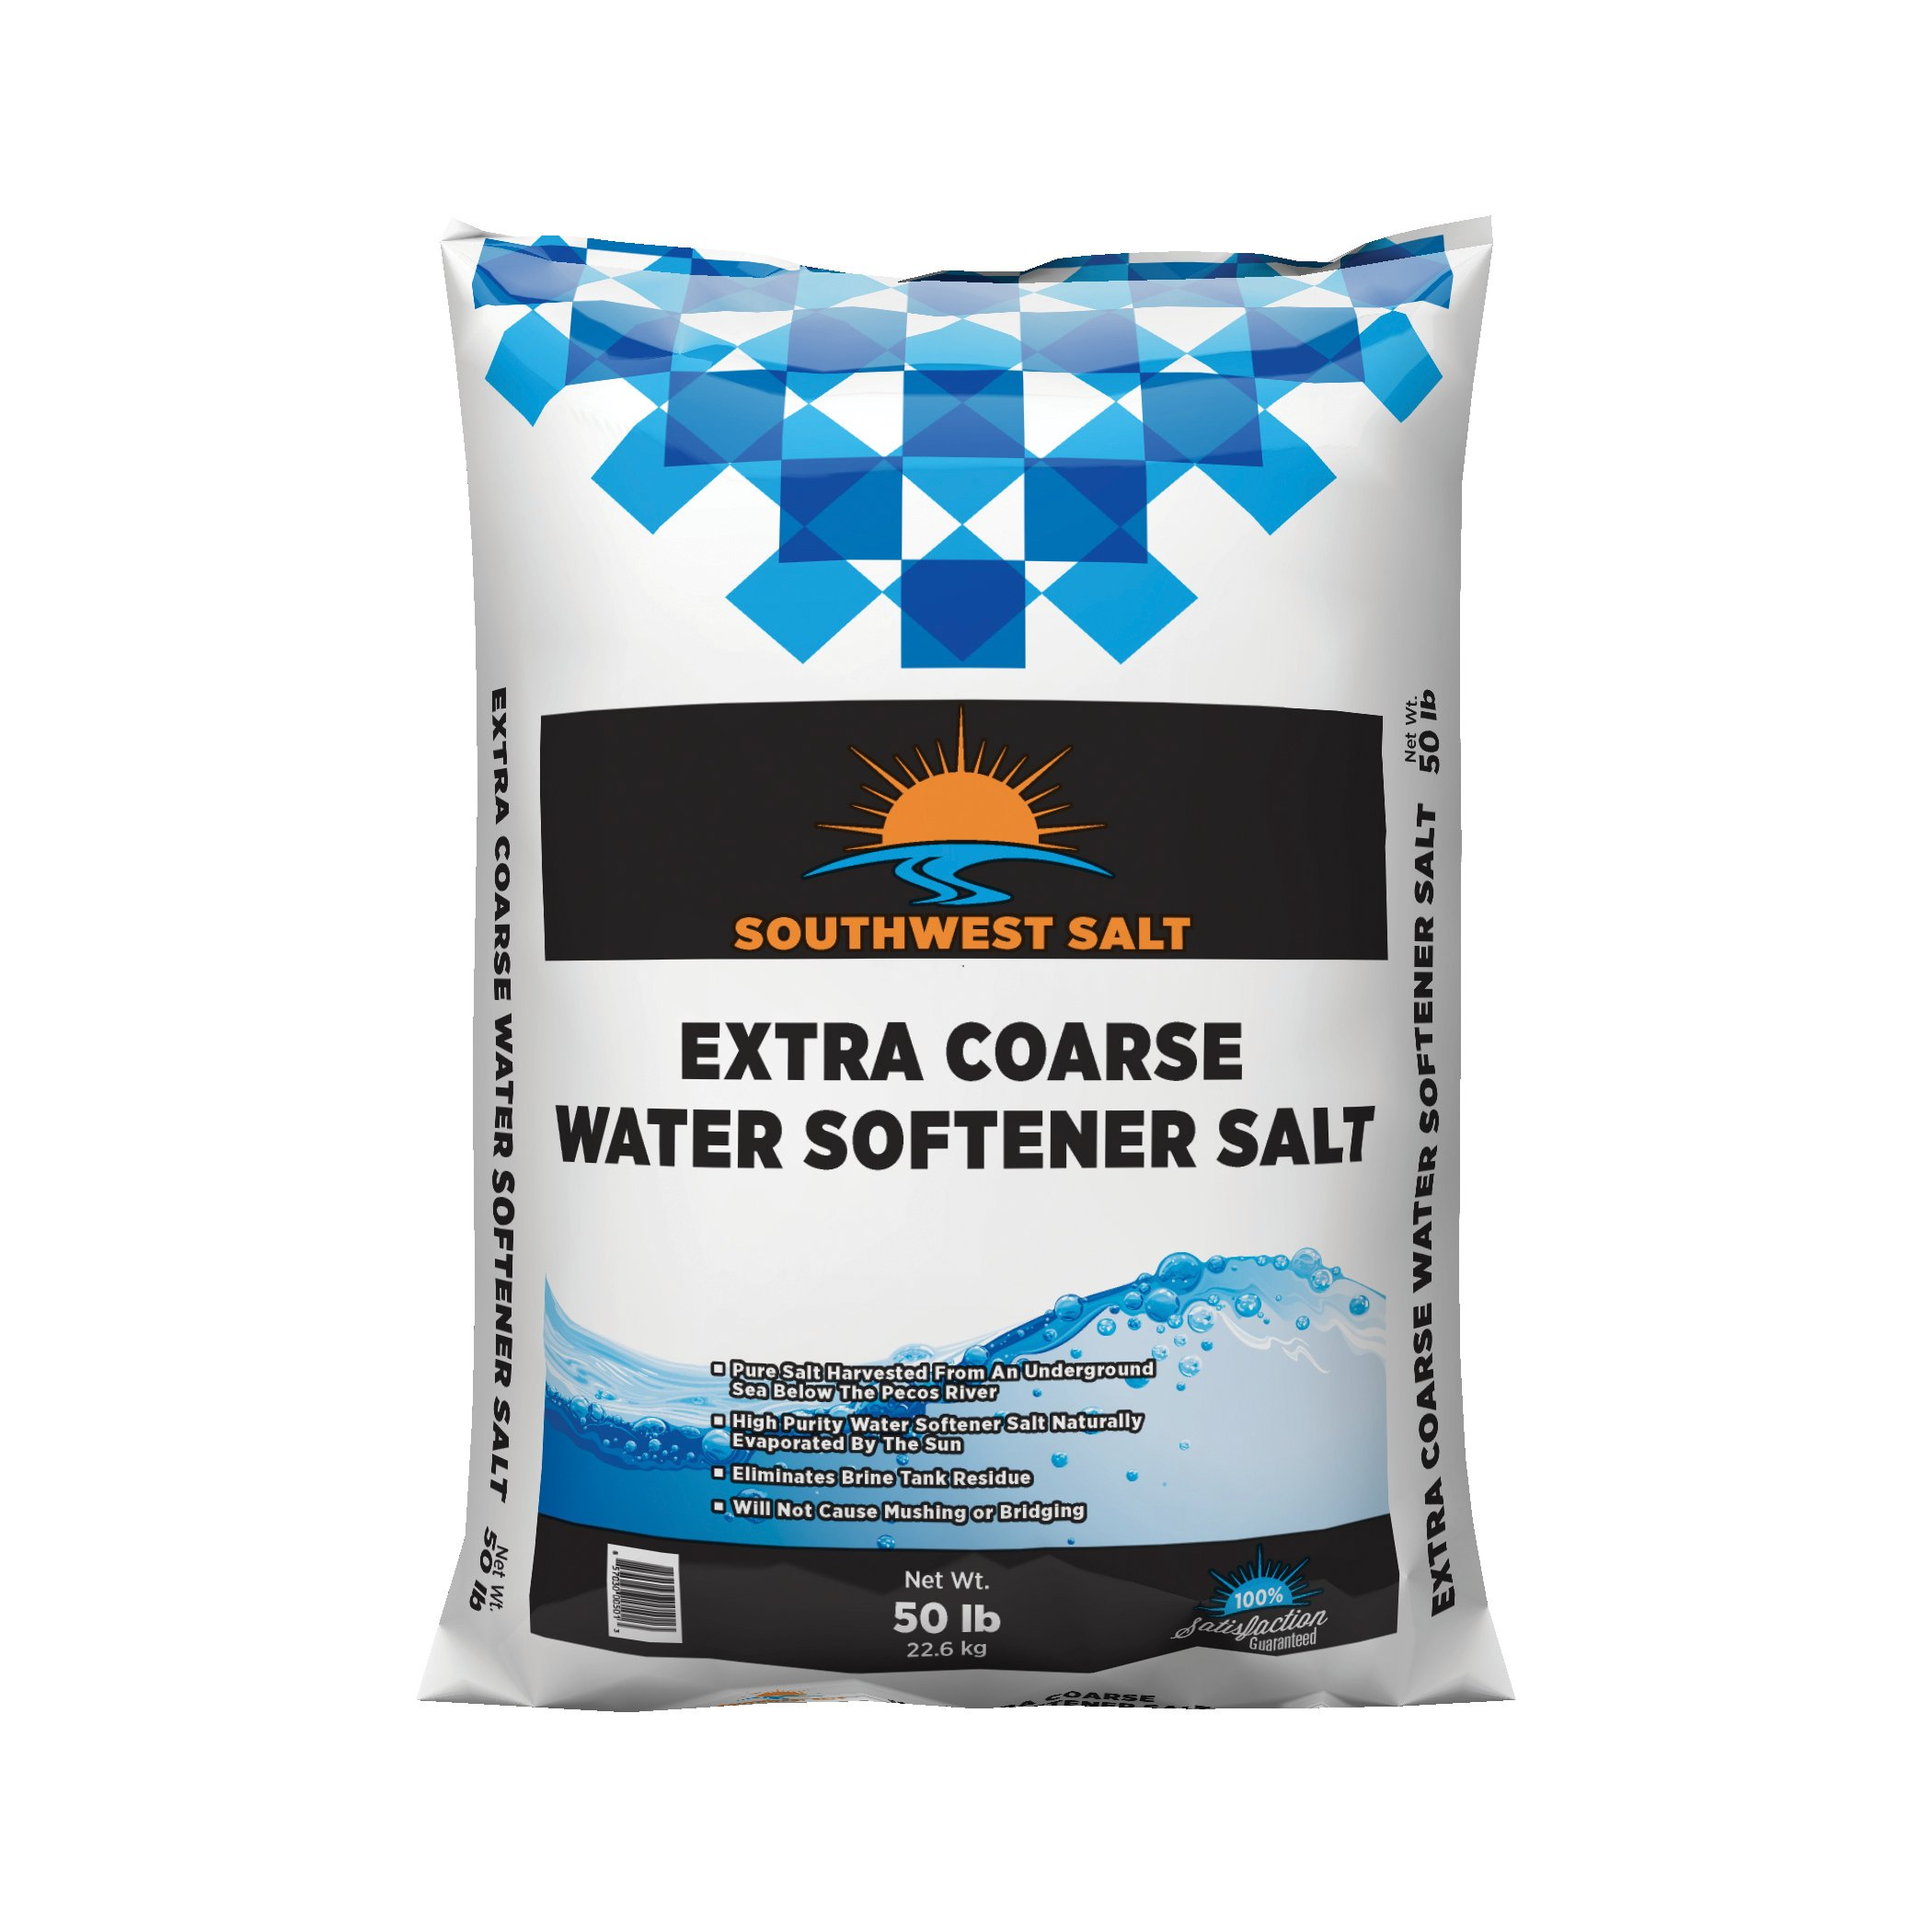 How To Start A Water Softener Southwest Salt Extra Coarse Water Softener Salt Shop Water